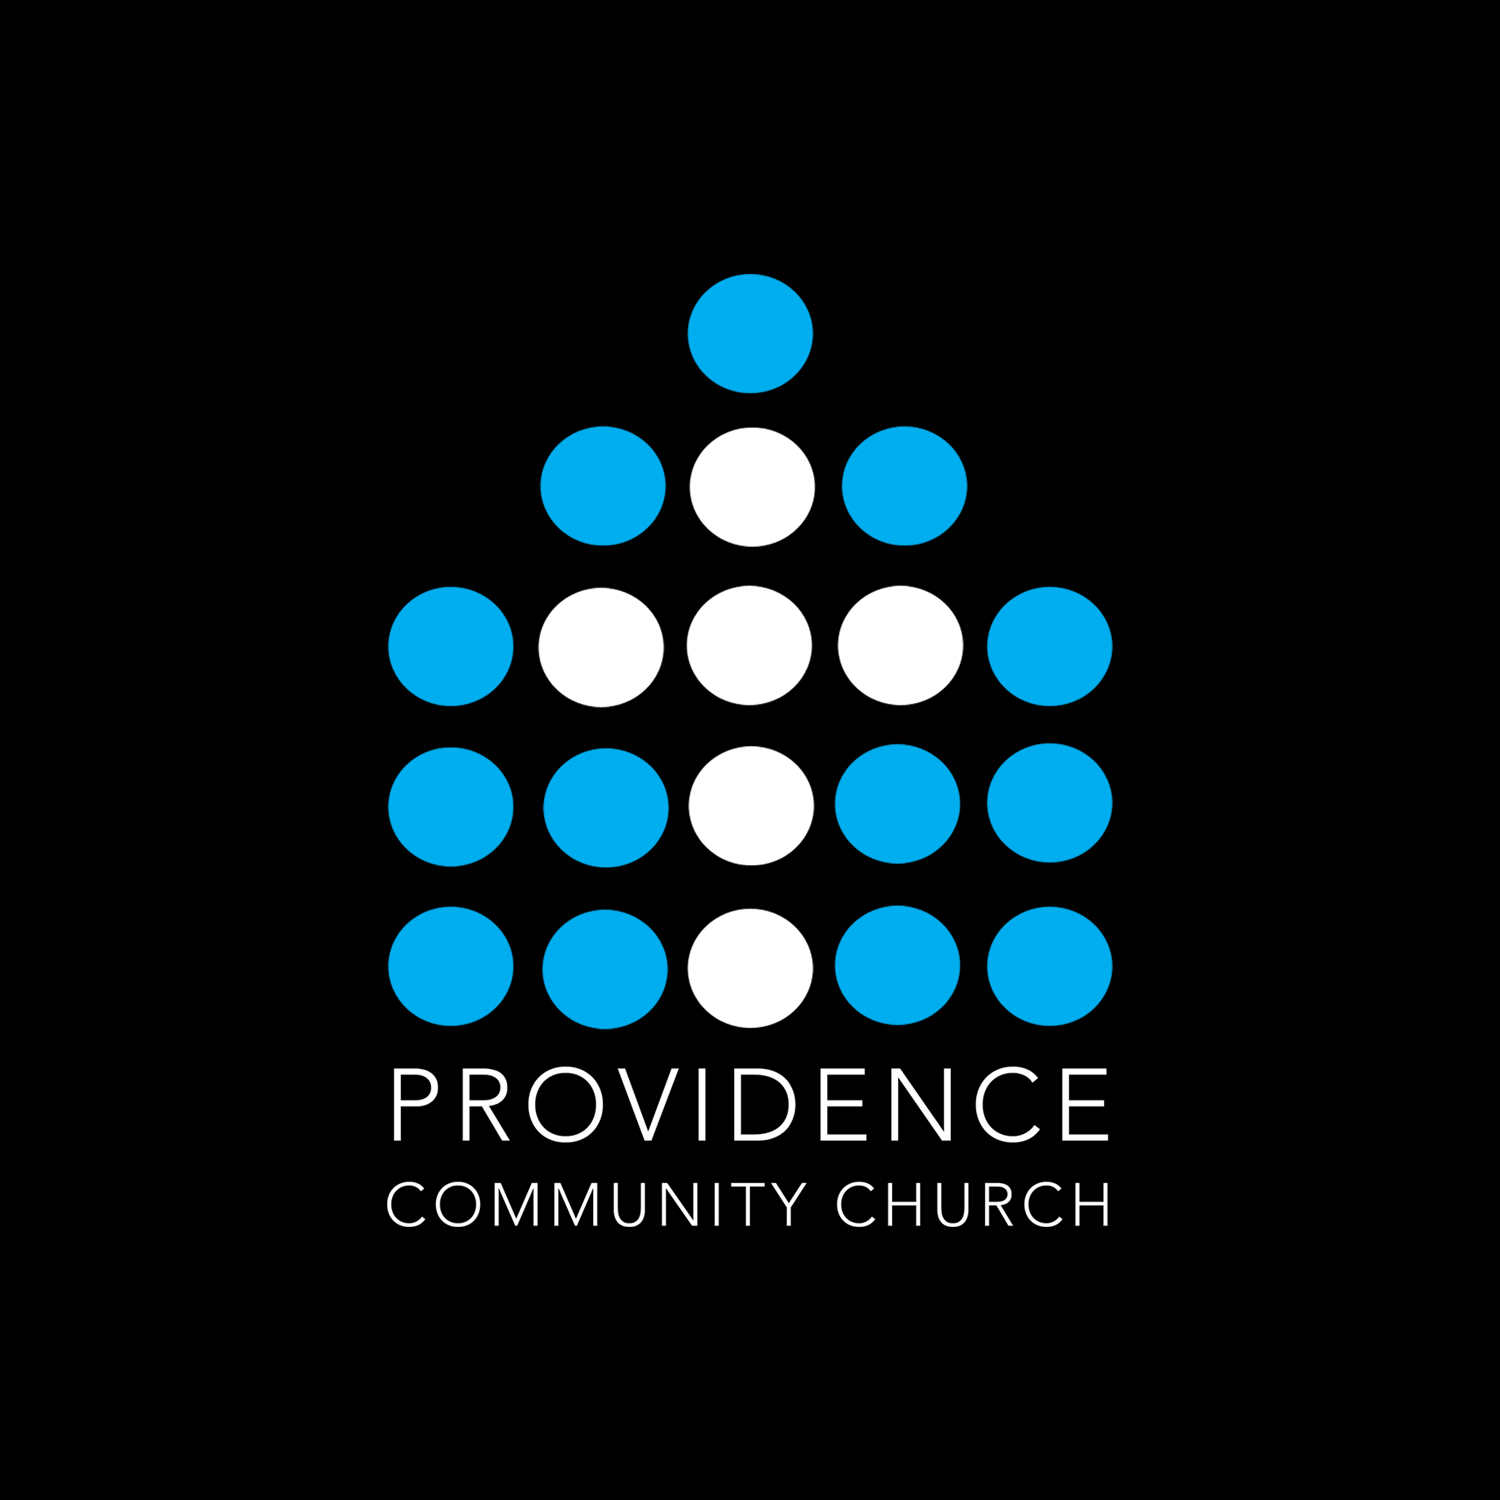 Providence Community Church (Logo)